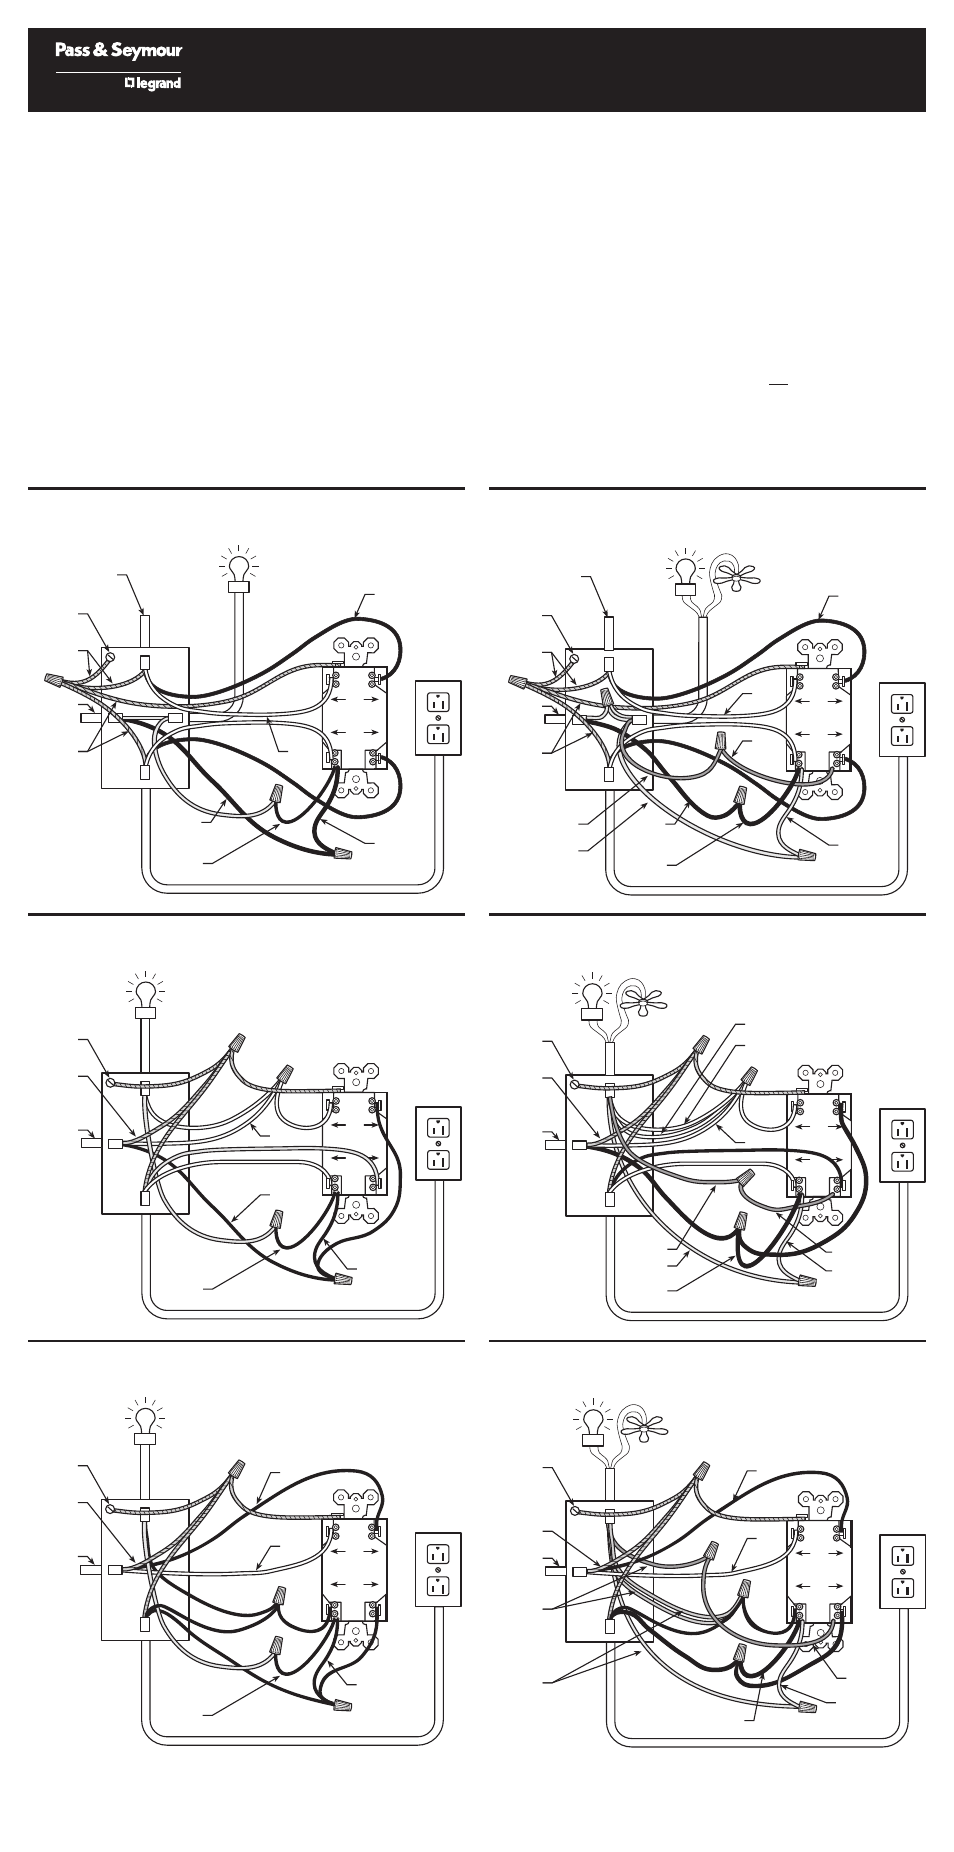 Legrand 1595SWT User Manual | 2 pages | Also for: 15952SWTManuals Directory